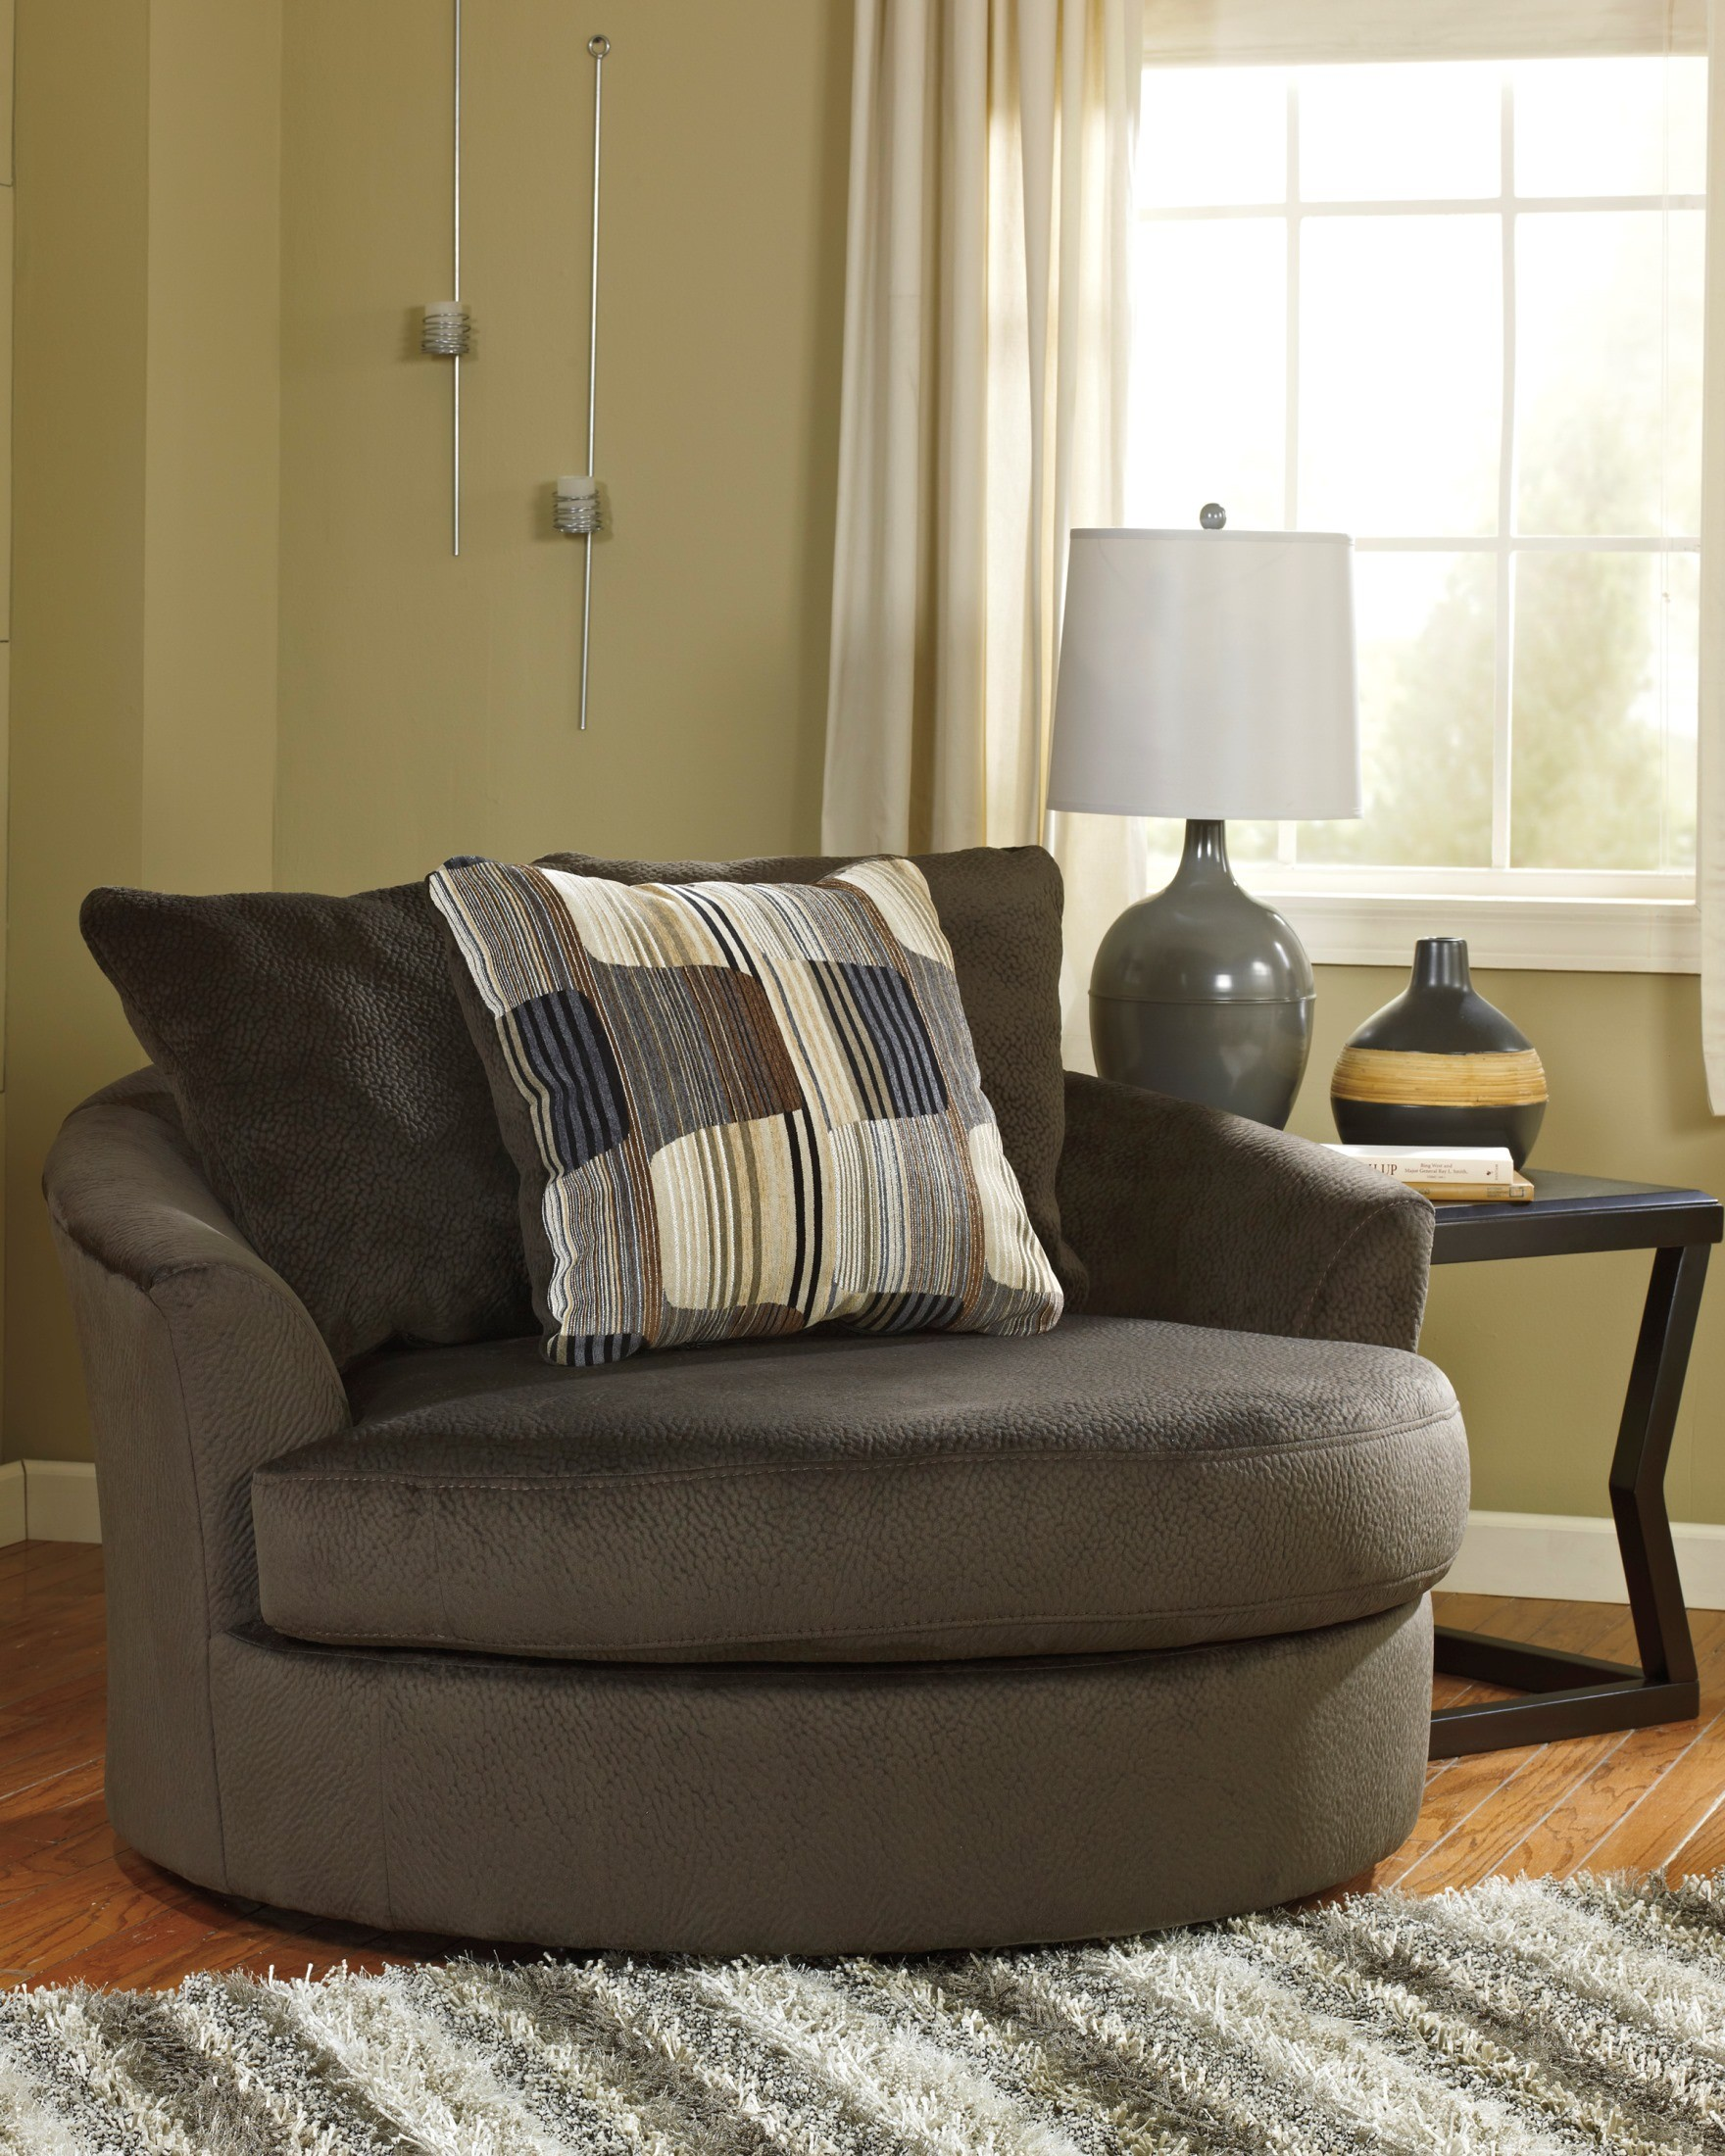 Westen chocolate oversized swivel accent chair for Oversized occasional chairs